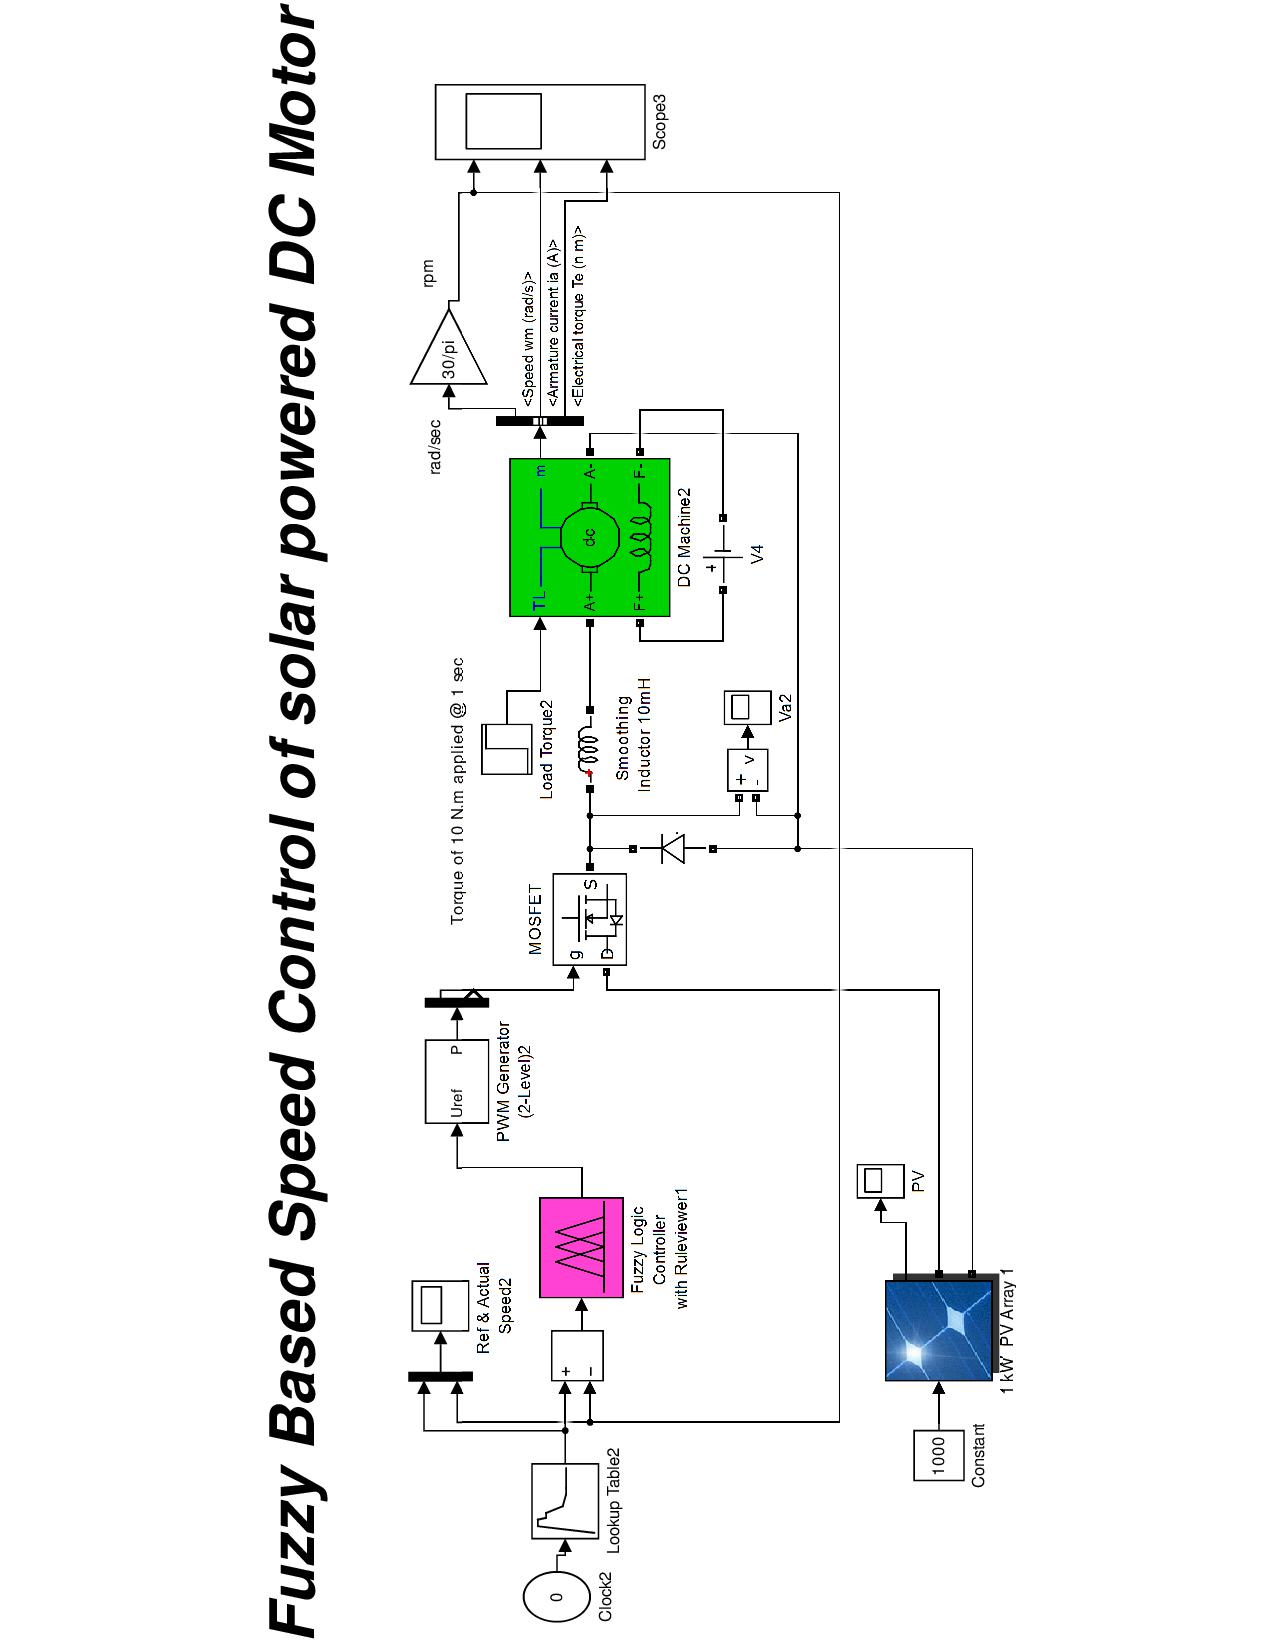 fuzzy logic based speed control of solar powered dc motor - file exchange